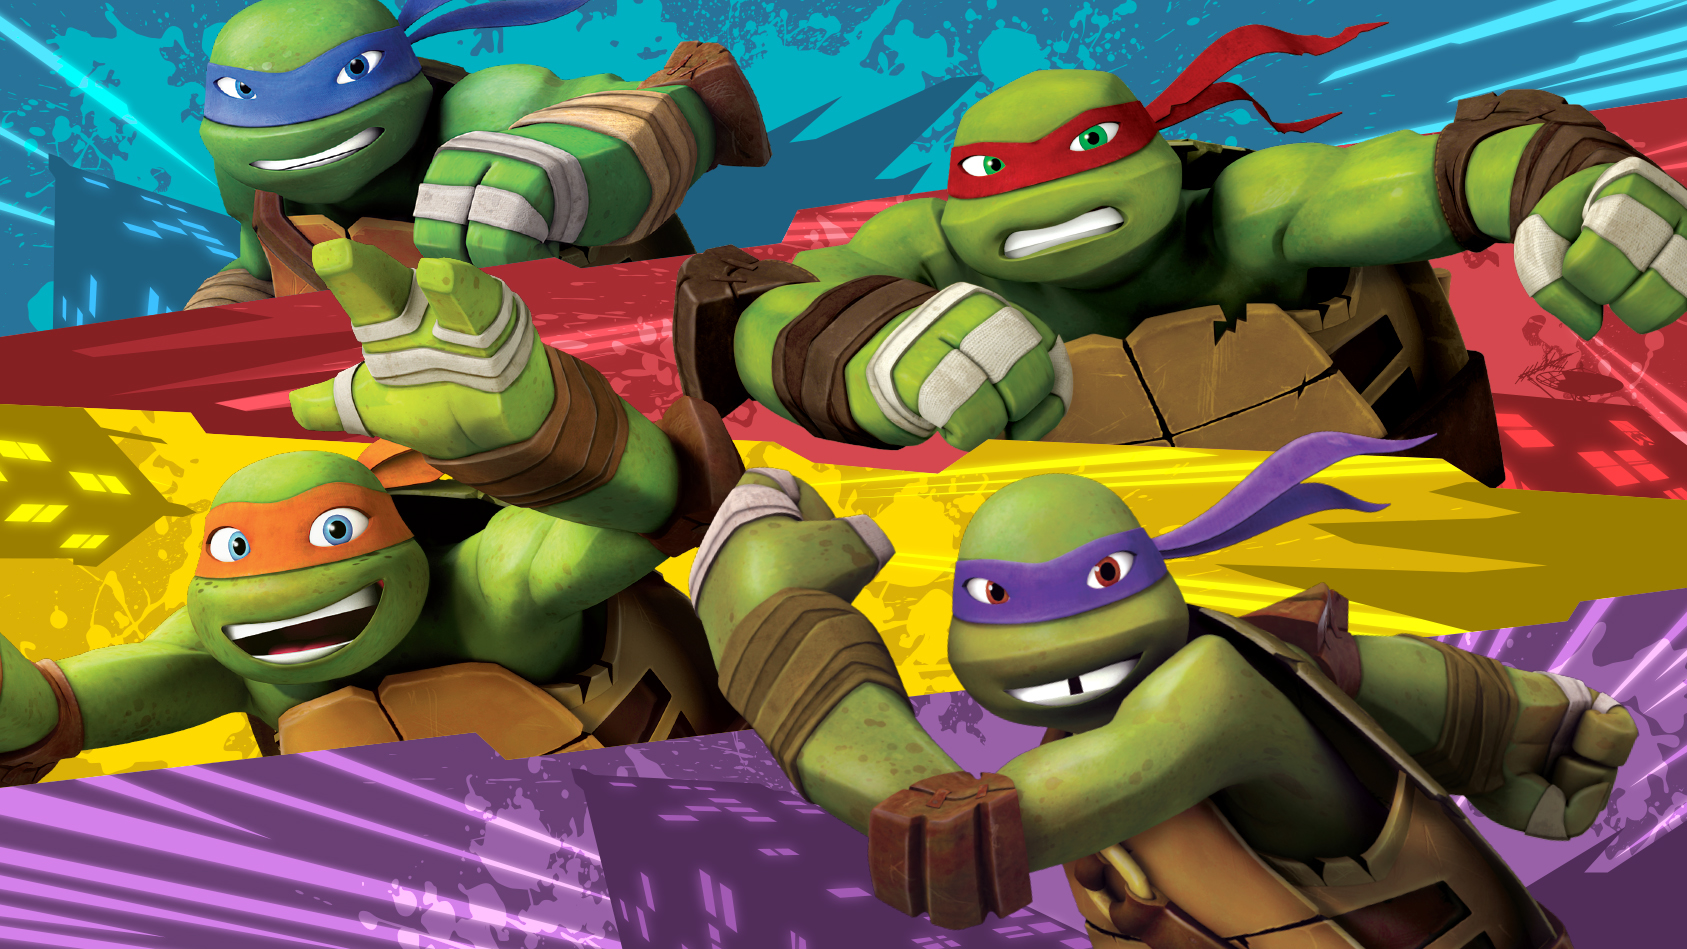 Teenage Mutant Ninja Turtles Style Guide 2015 on Behance